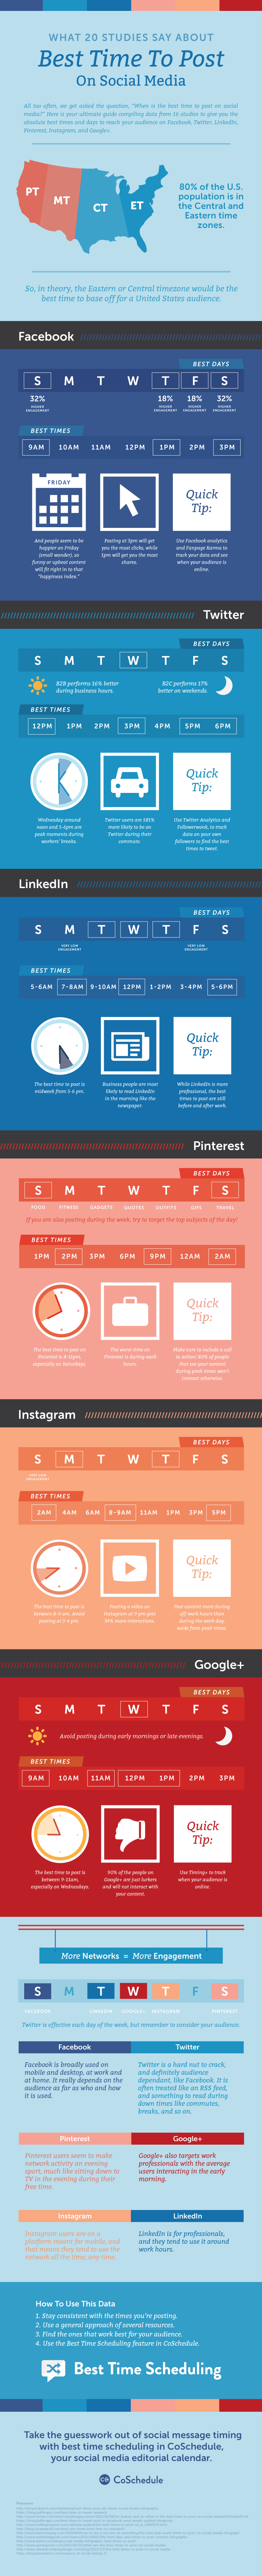 CoSchedule Infographic: Best Times to Post on Social Media